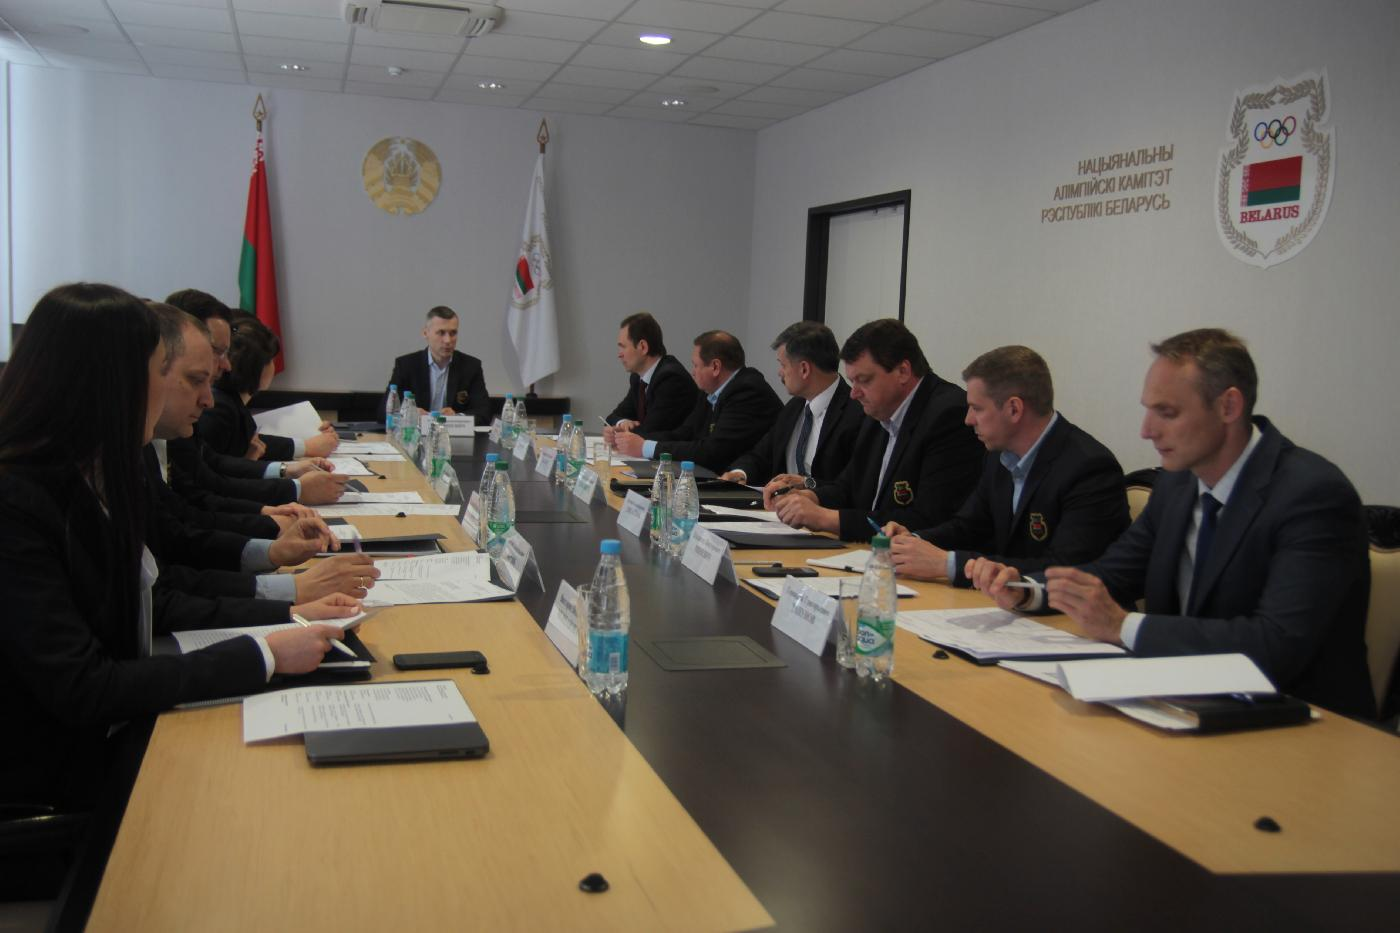 The Executive Committee of the NOC of Belarus approved the chief of mission for the Youth Olympic Games in Buenos Aires